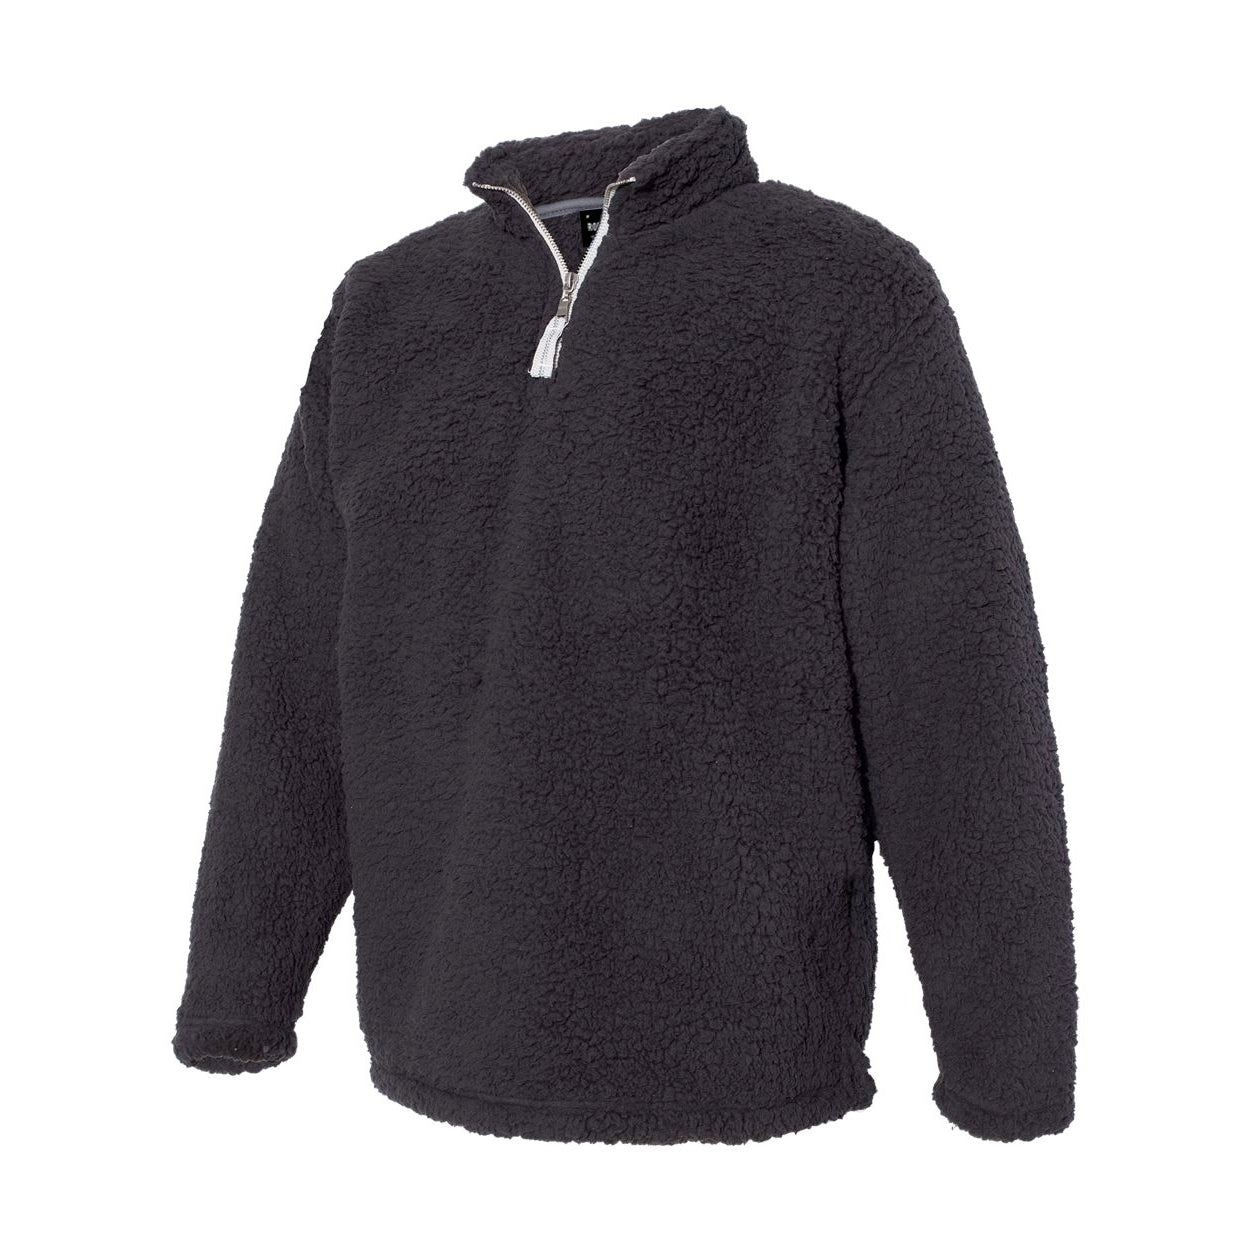 MOONWALKER SHERPA  // BLACK Sherpa Zip Pull Over